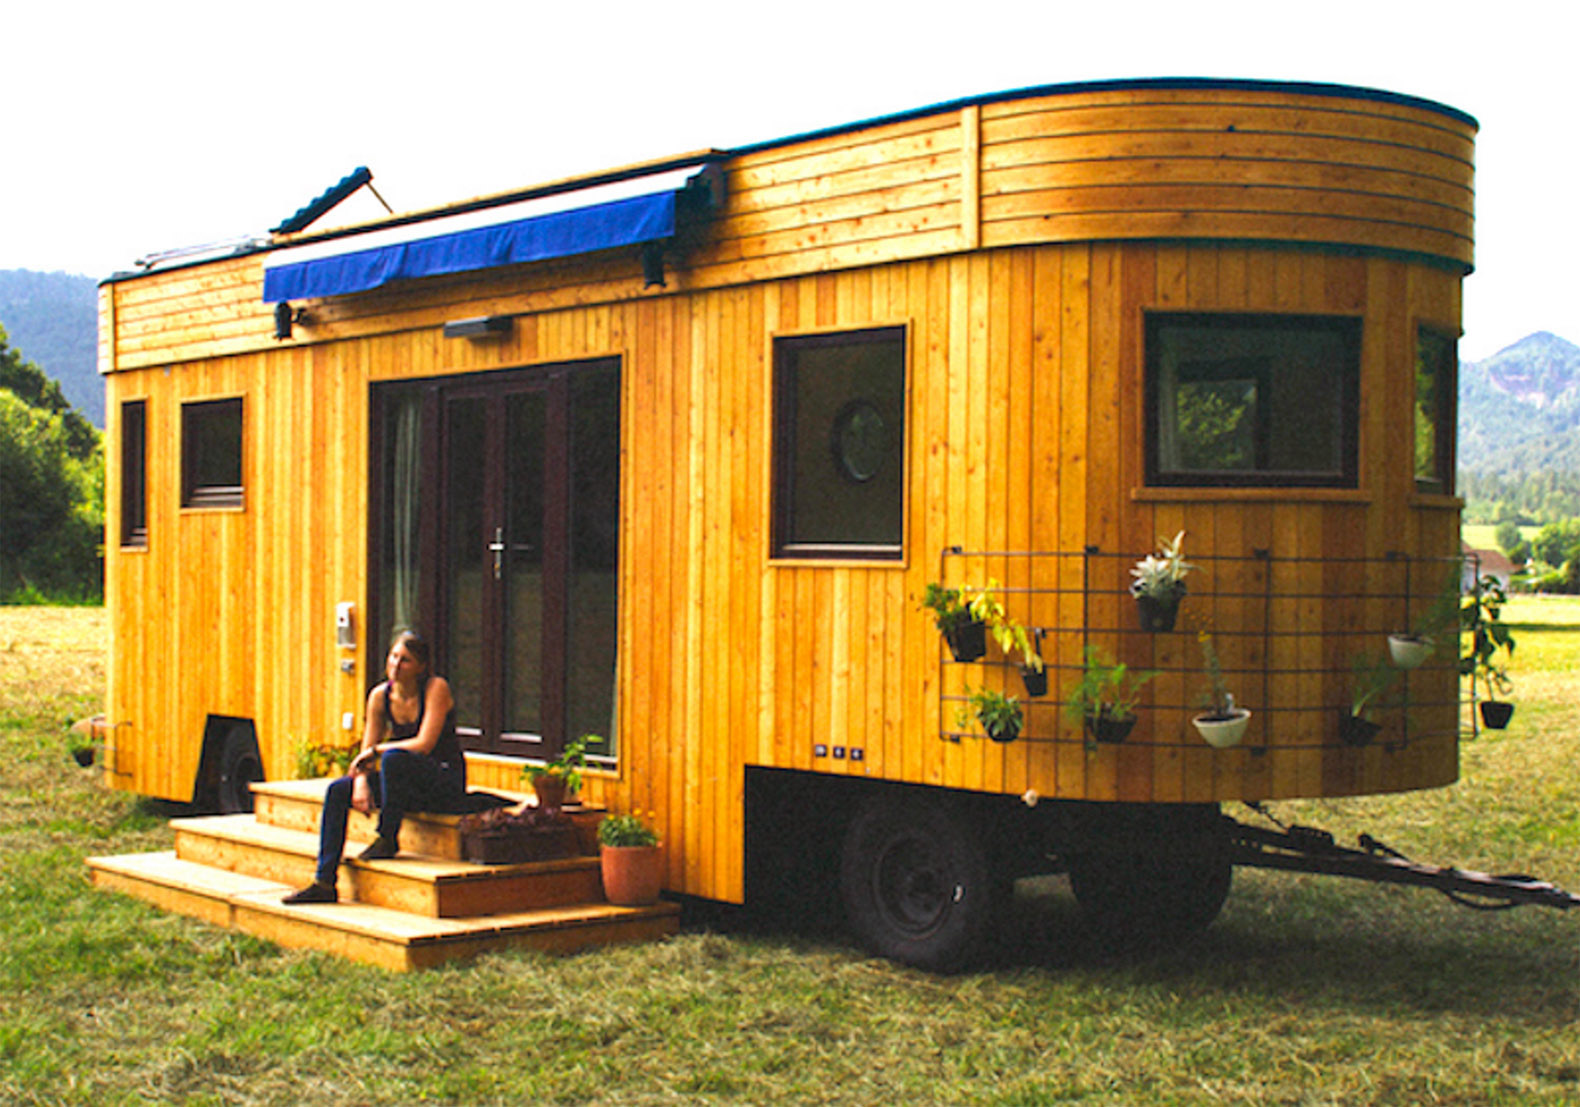 Tiny House Inhabitat Green Design Innovation Architecture